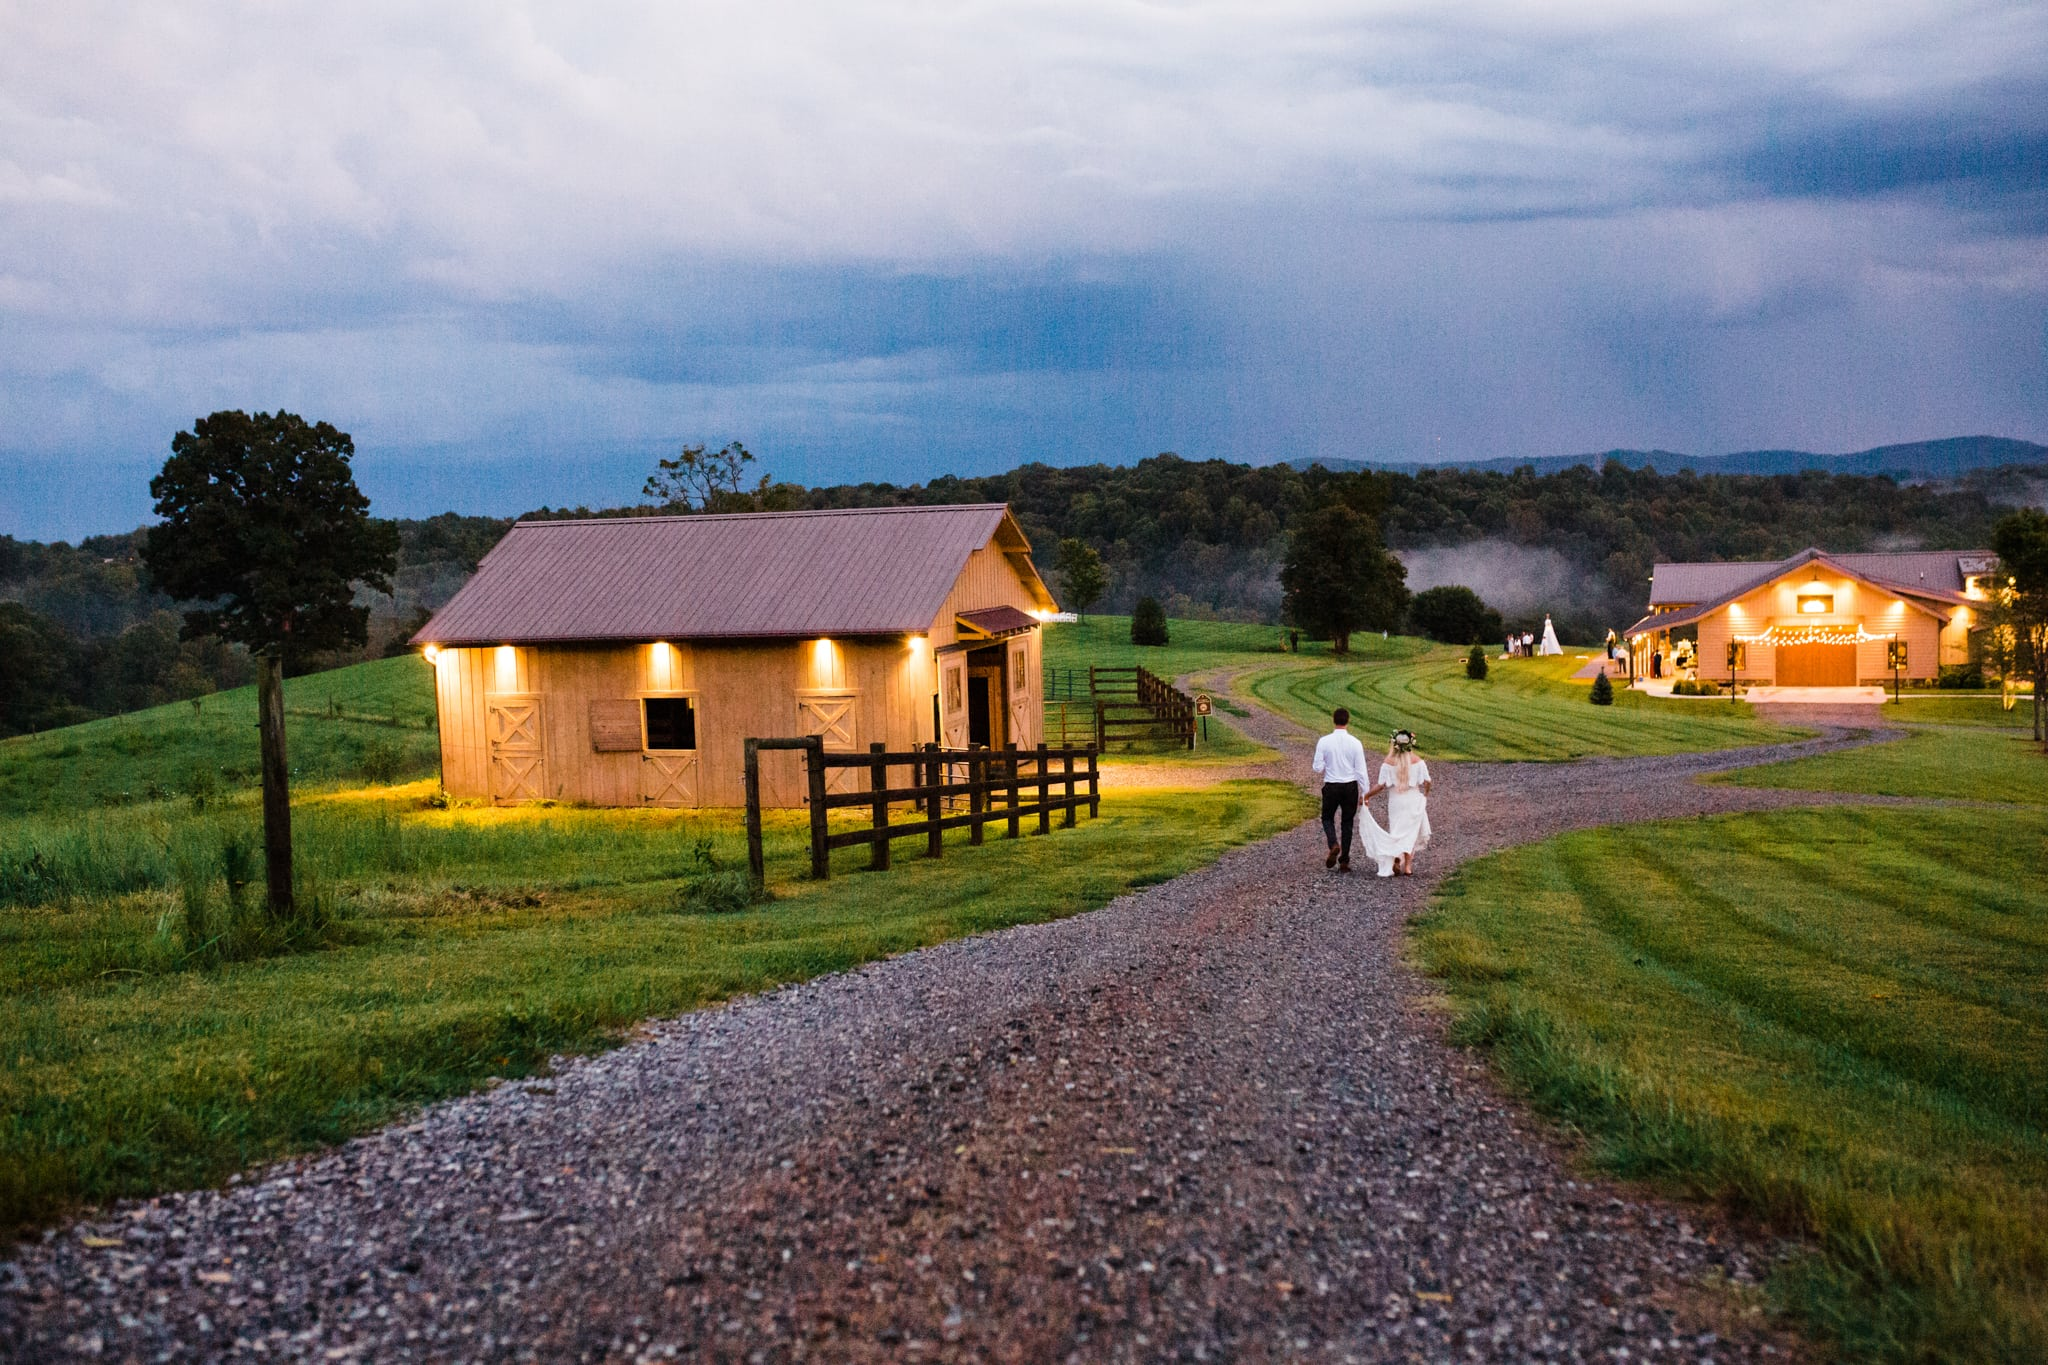 bride and groom walking down road during sunset lit by orange lights at gambill estate